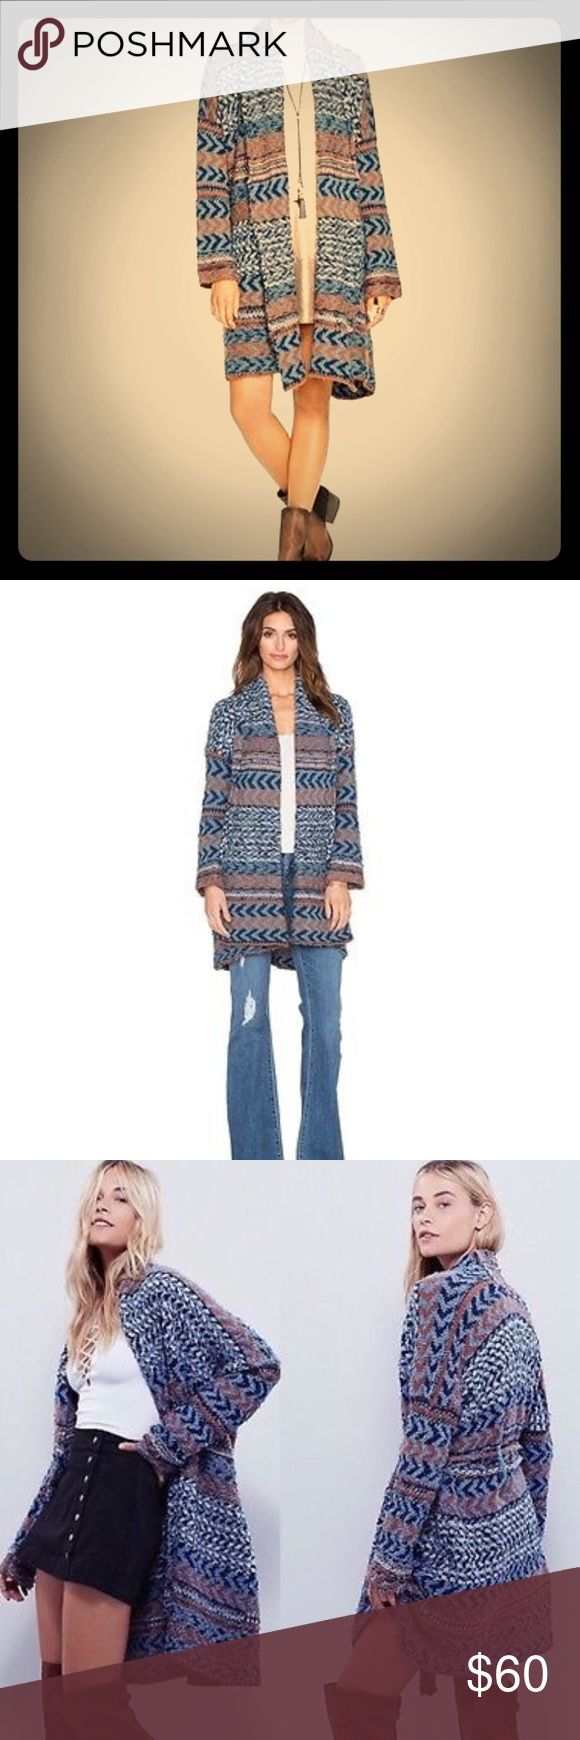 Free People Iona Tribal Cardigan NWOT Free People Iona Tribal Cardigan NWOT. Very warm comfy cardigan with drawstring. Make an offer! Free People Sweaters Cardigans